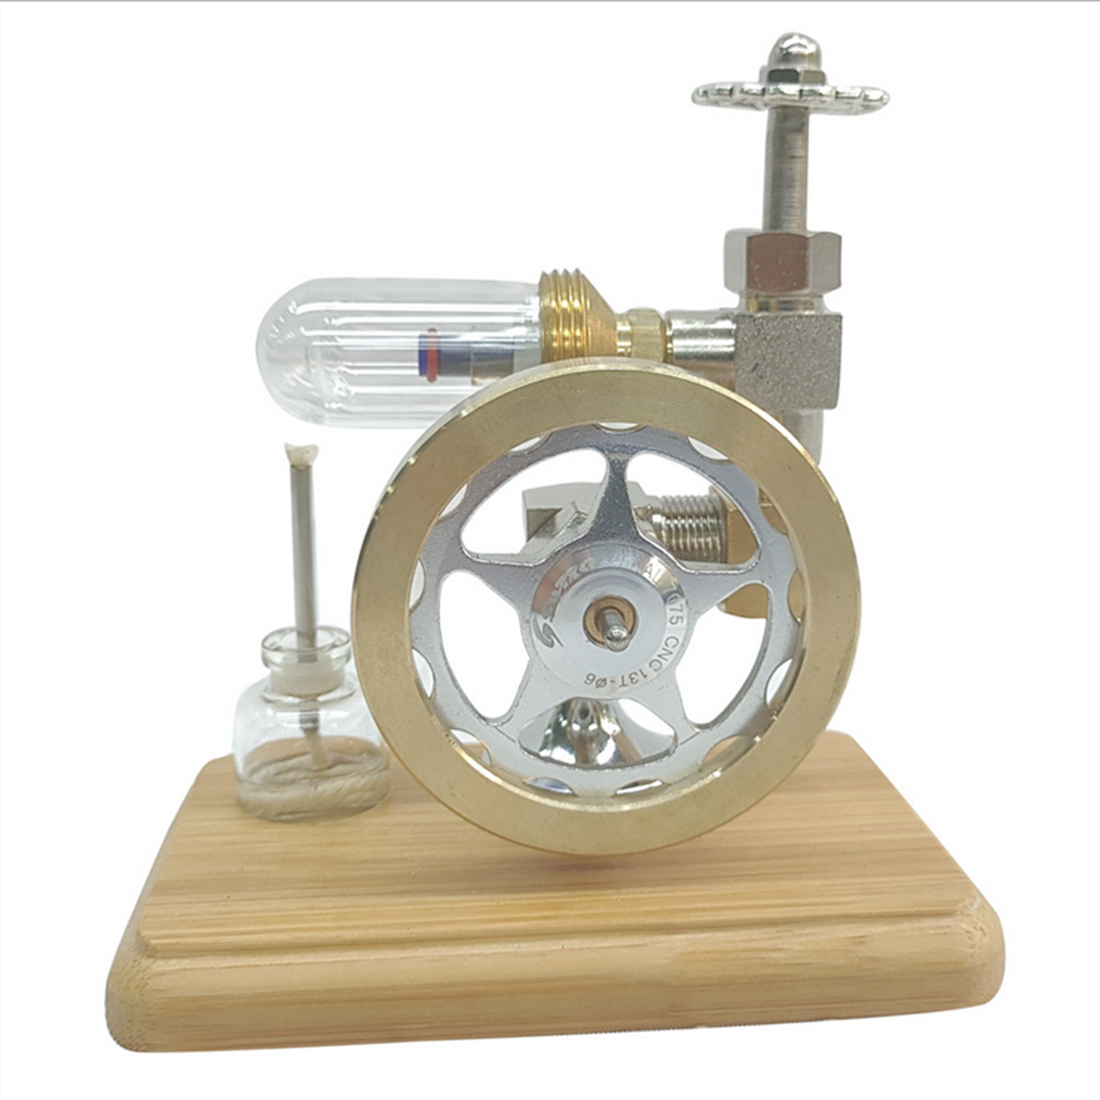 1pcs Small DIY Stem Adjustable Speed Free Piston Stirling Engine Model With Wooden Base